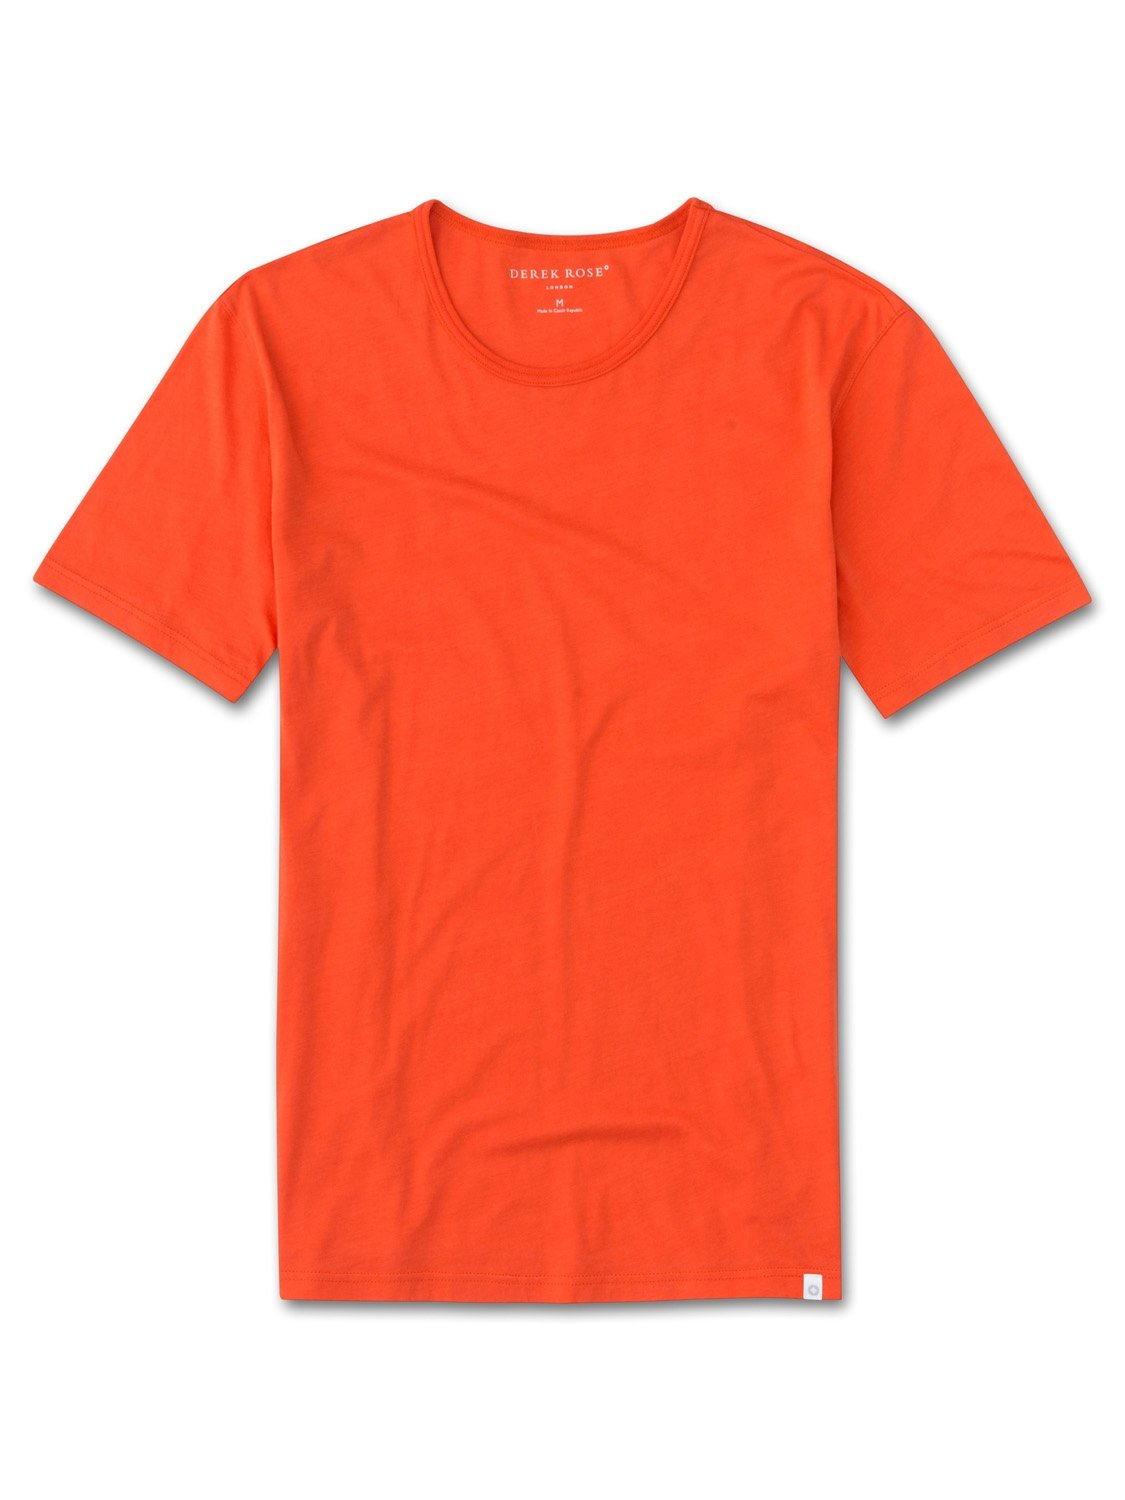 Men's Short Sleeve T-Shirt Riley 2 Pima Cotton Orange